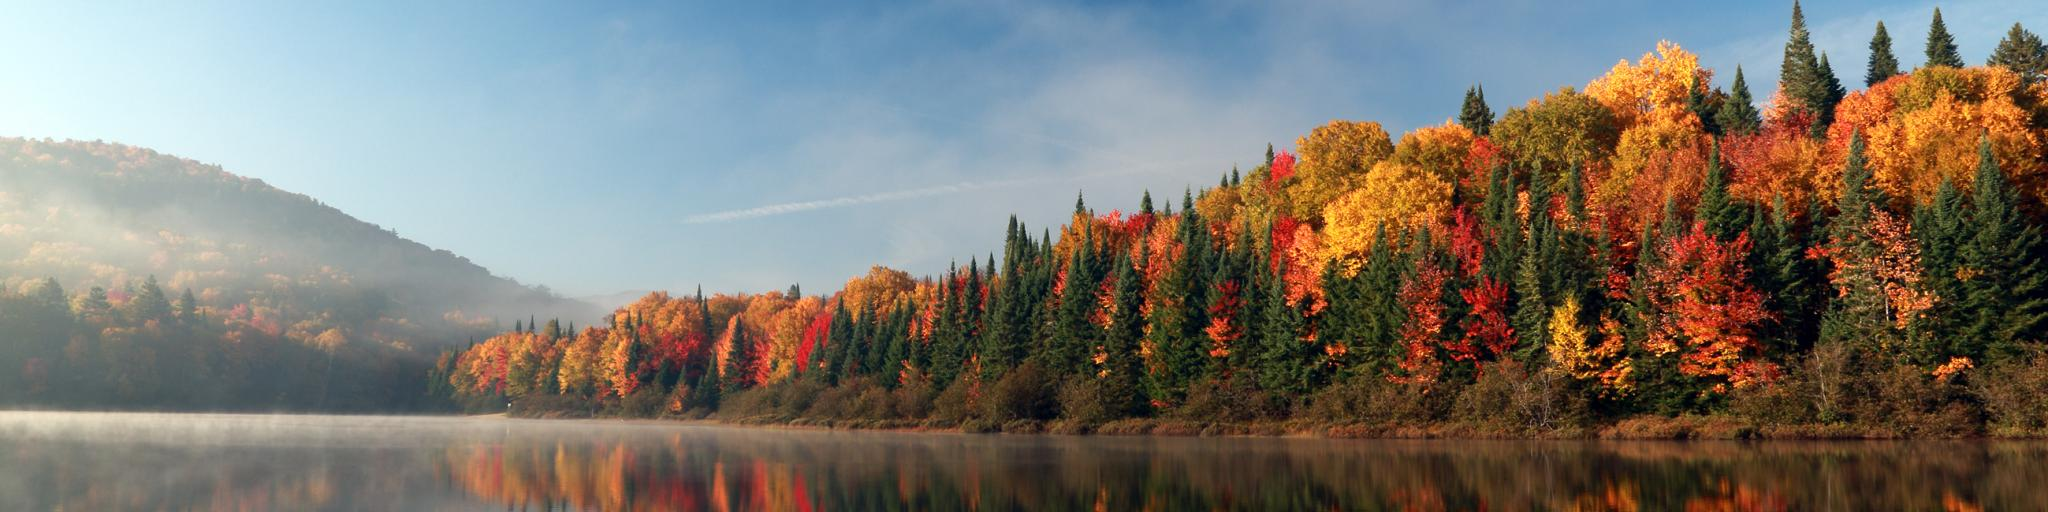 Bright autumn leaves in a forest on the edge of a lake in the Mont-Tremblant National Park, Quebec.